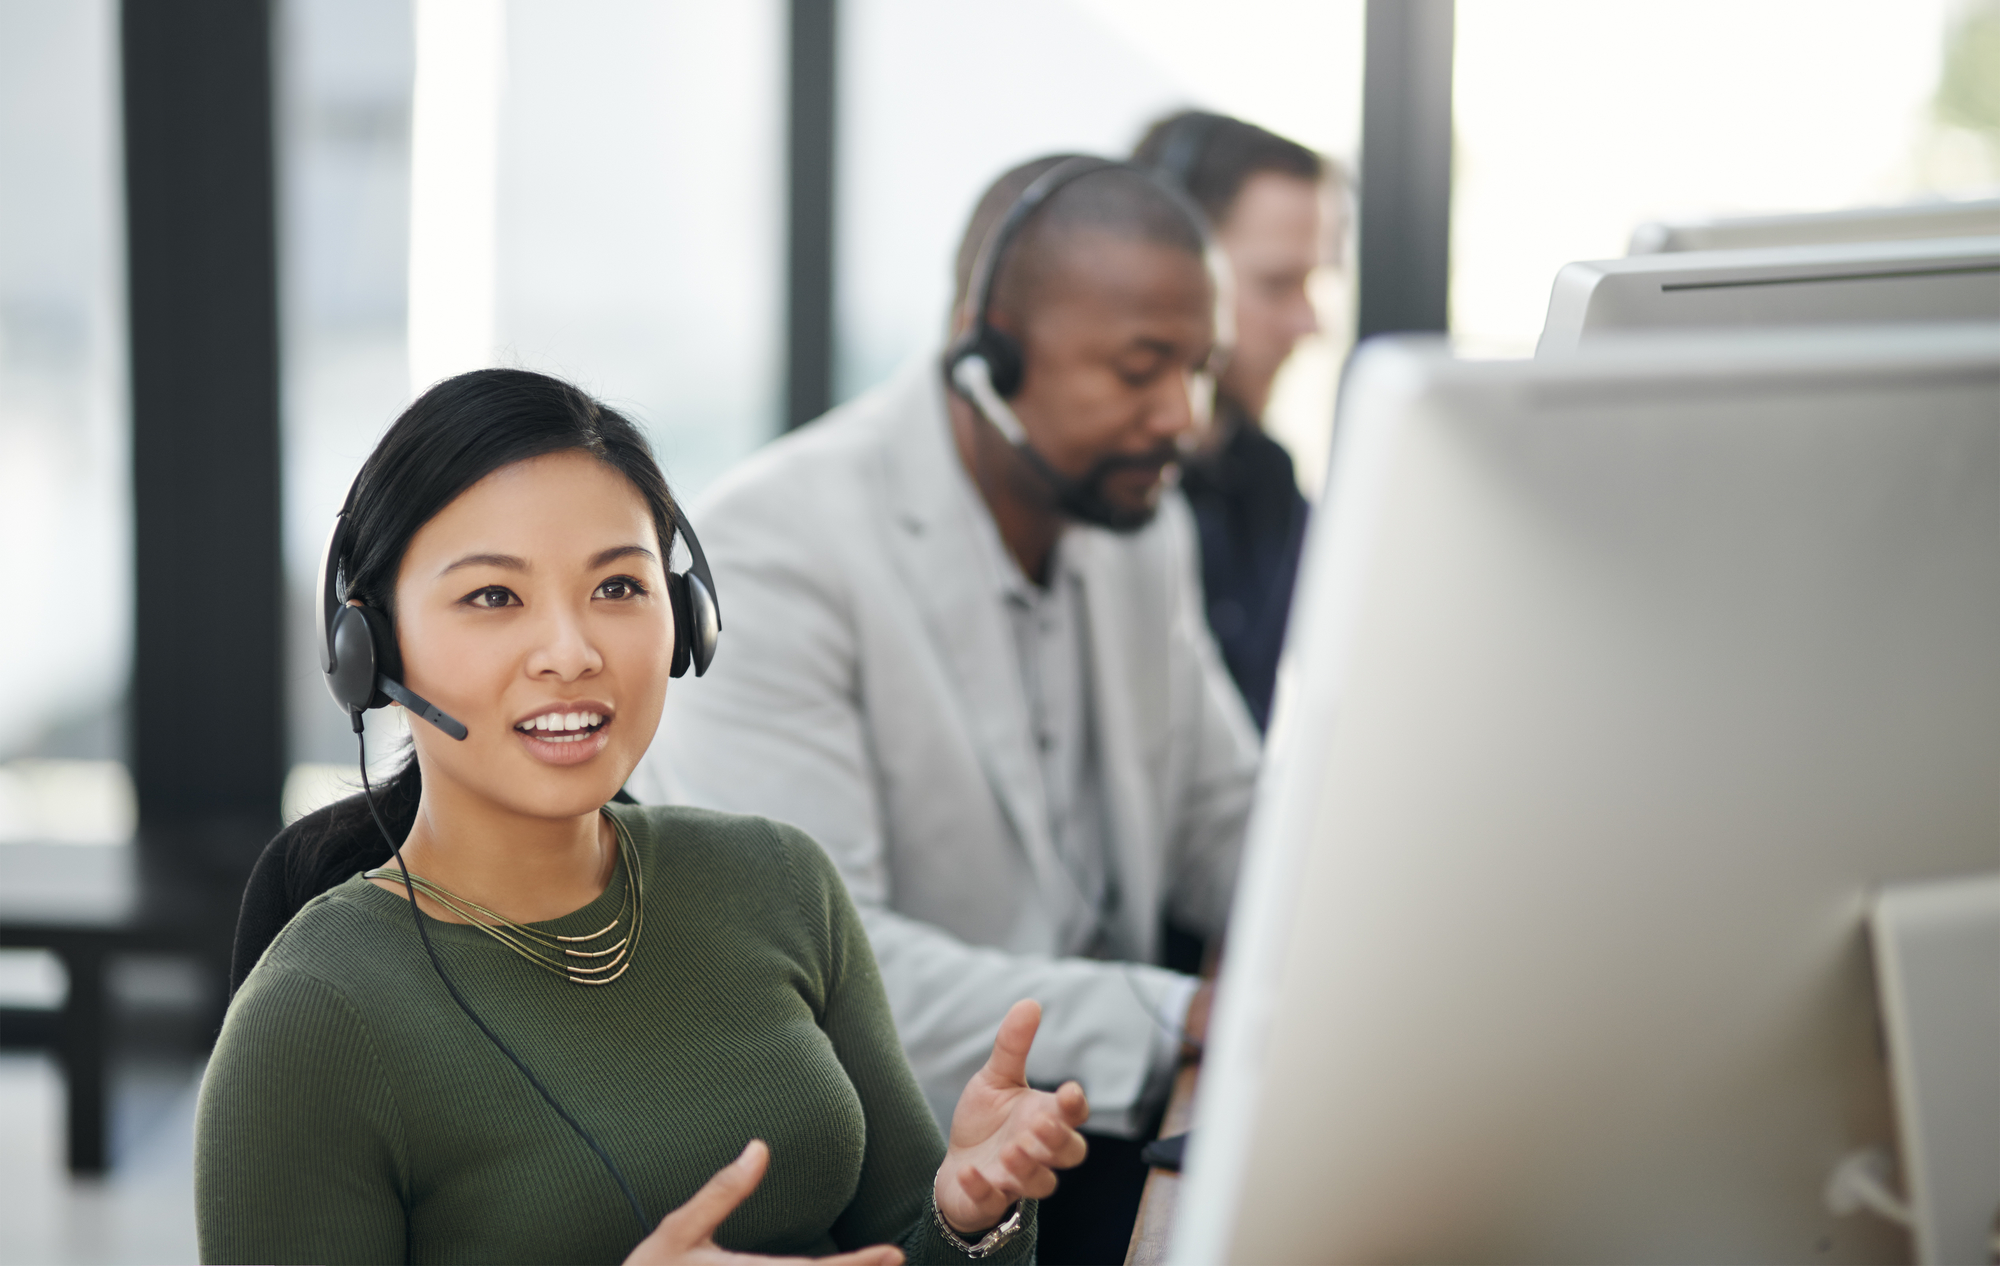 Female customer support agent wearing headset and talking to customer